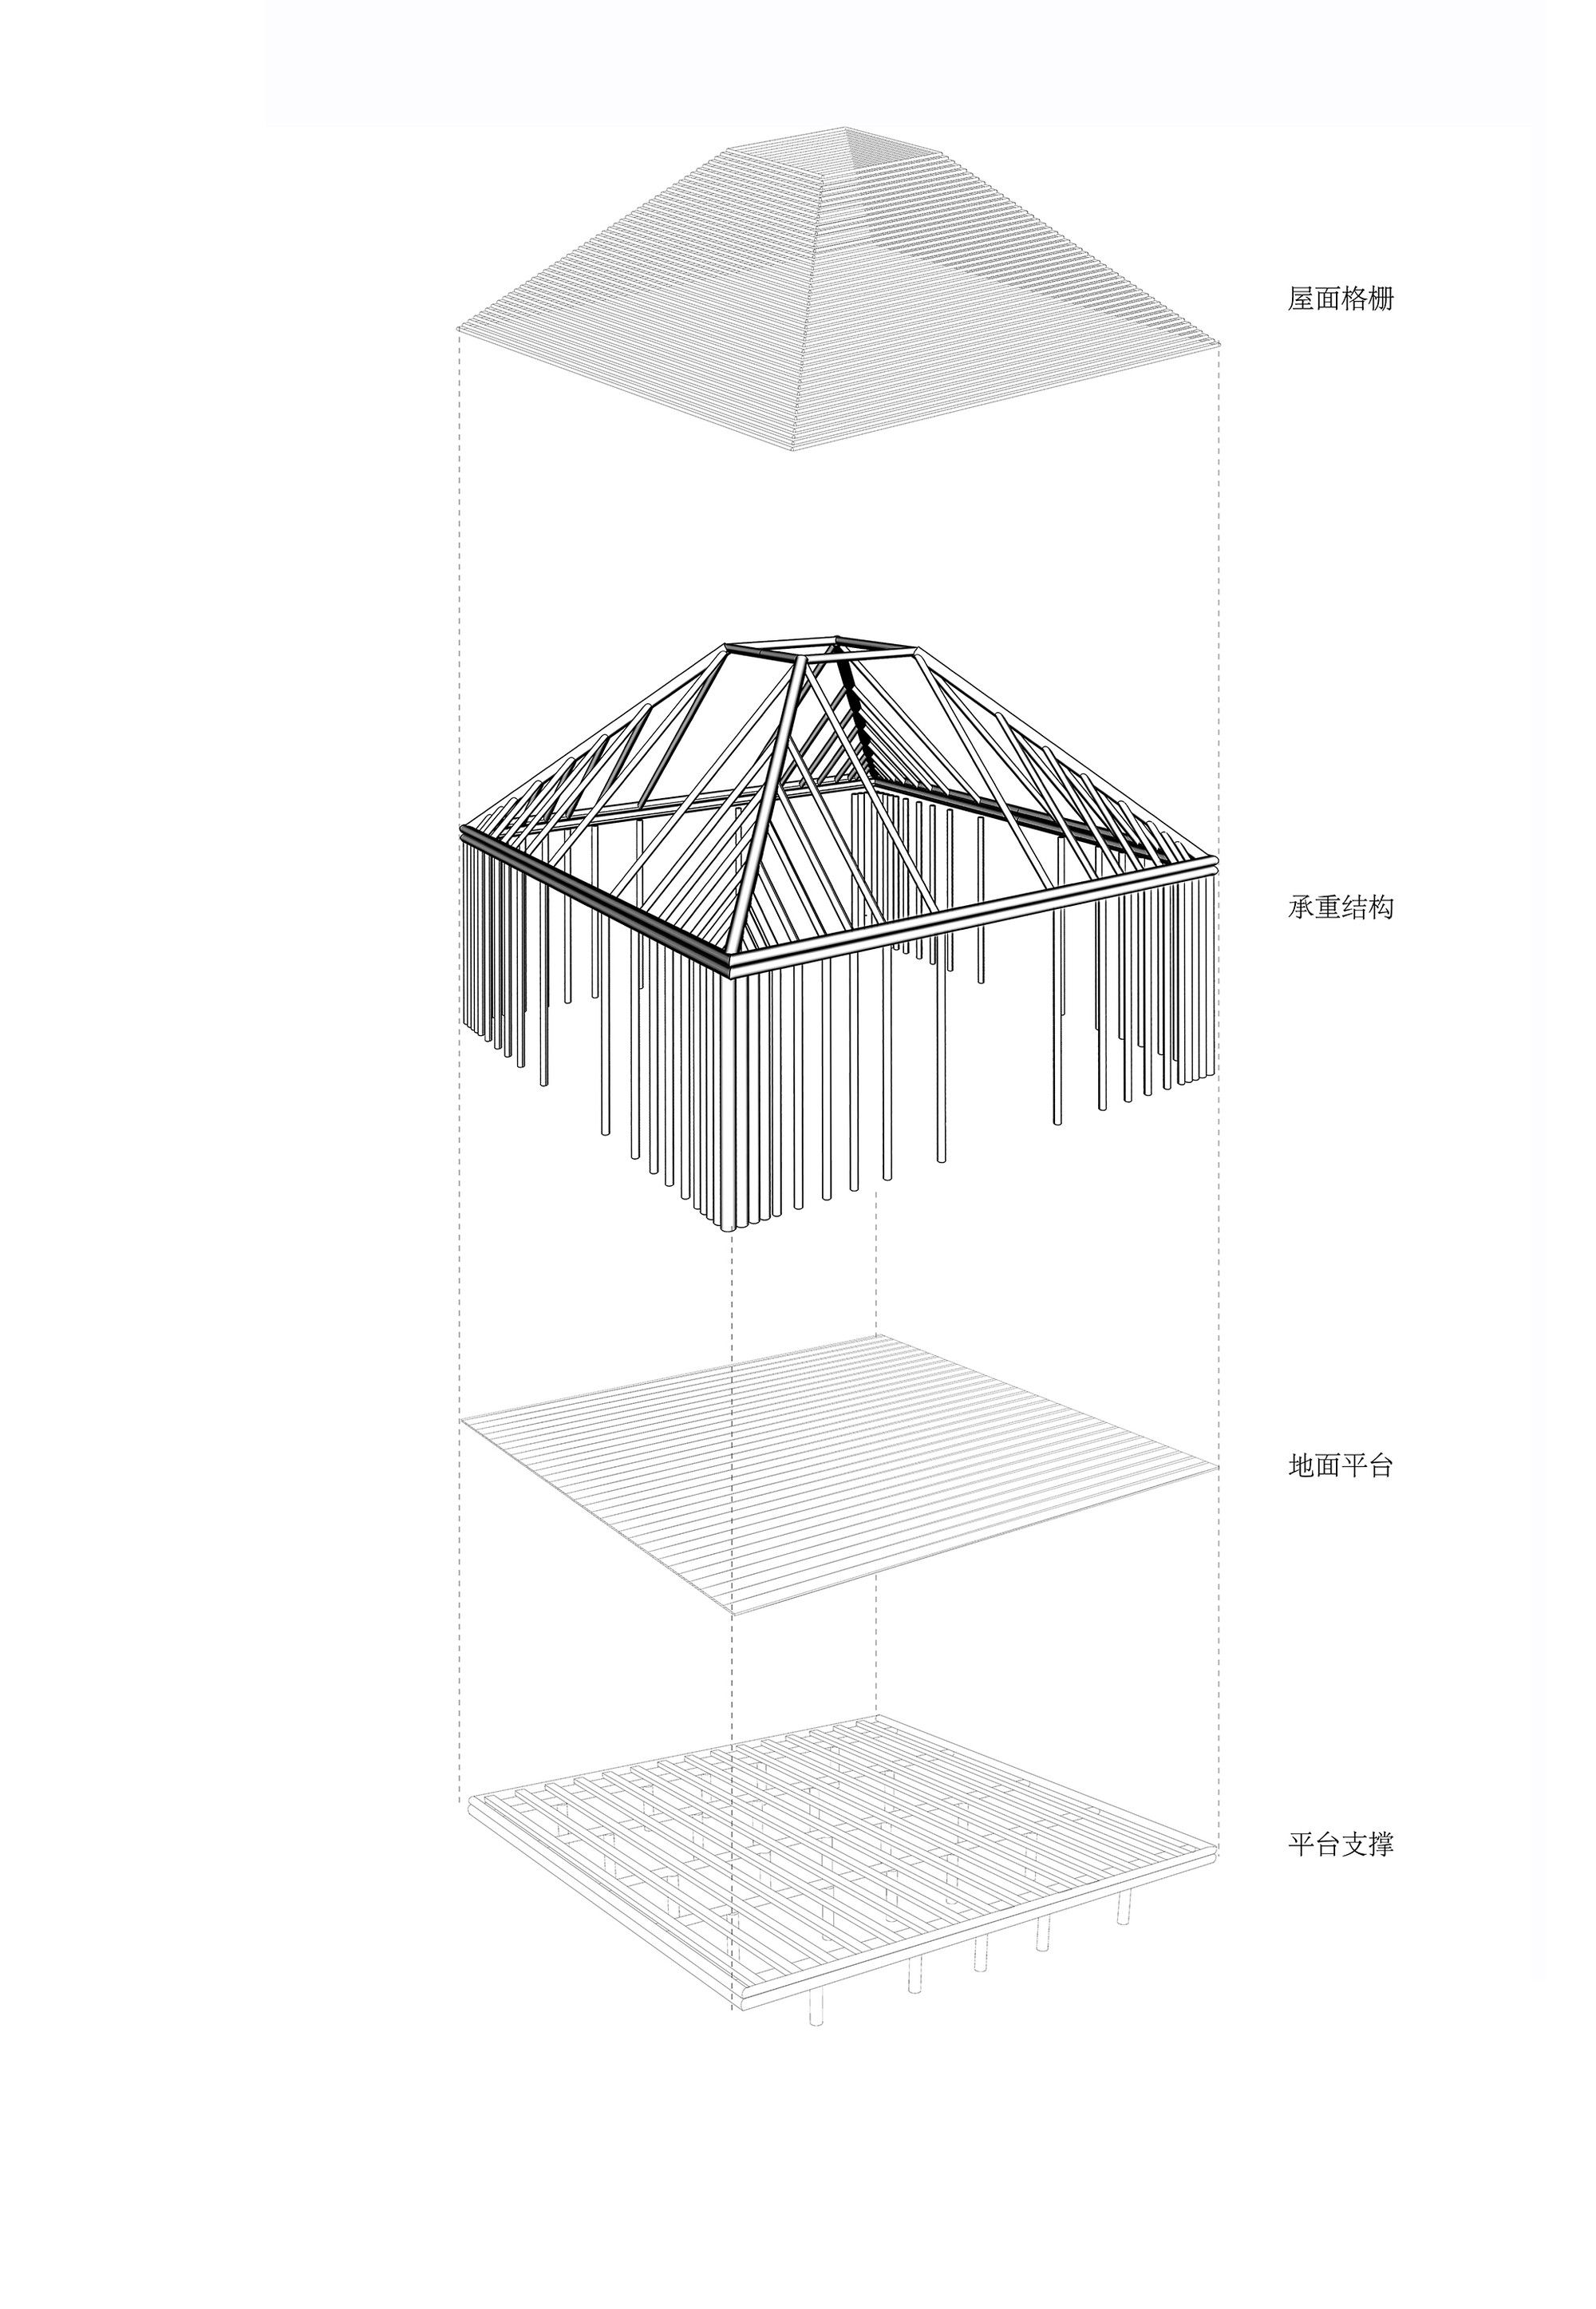 Gallery - Bamboo Pavilion / DnA_Design and Architecture - 10